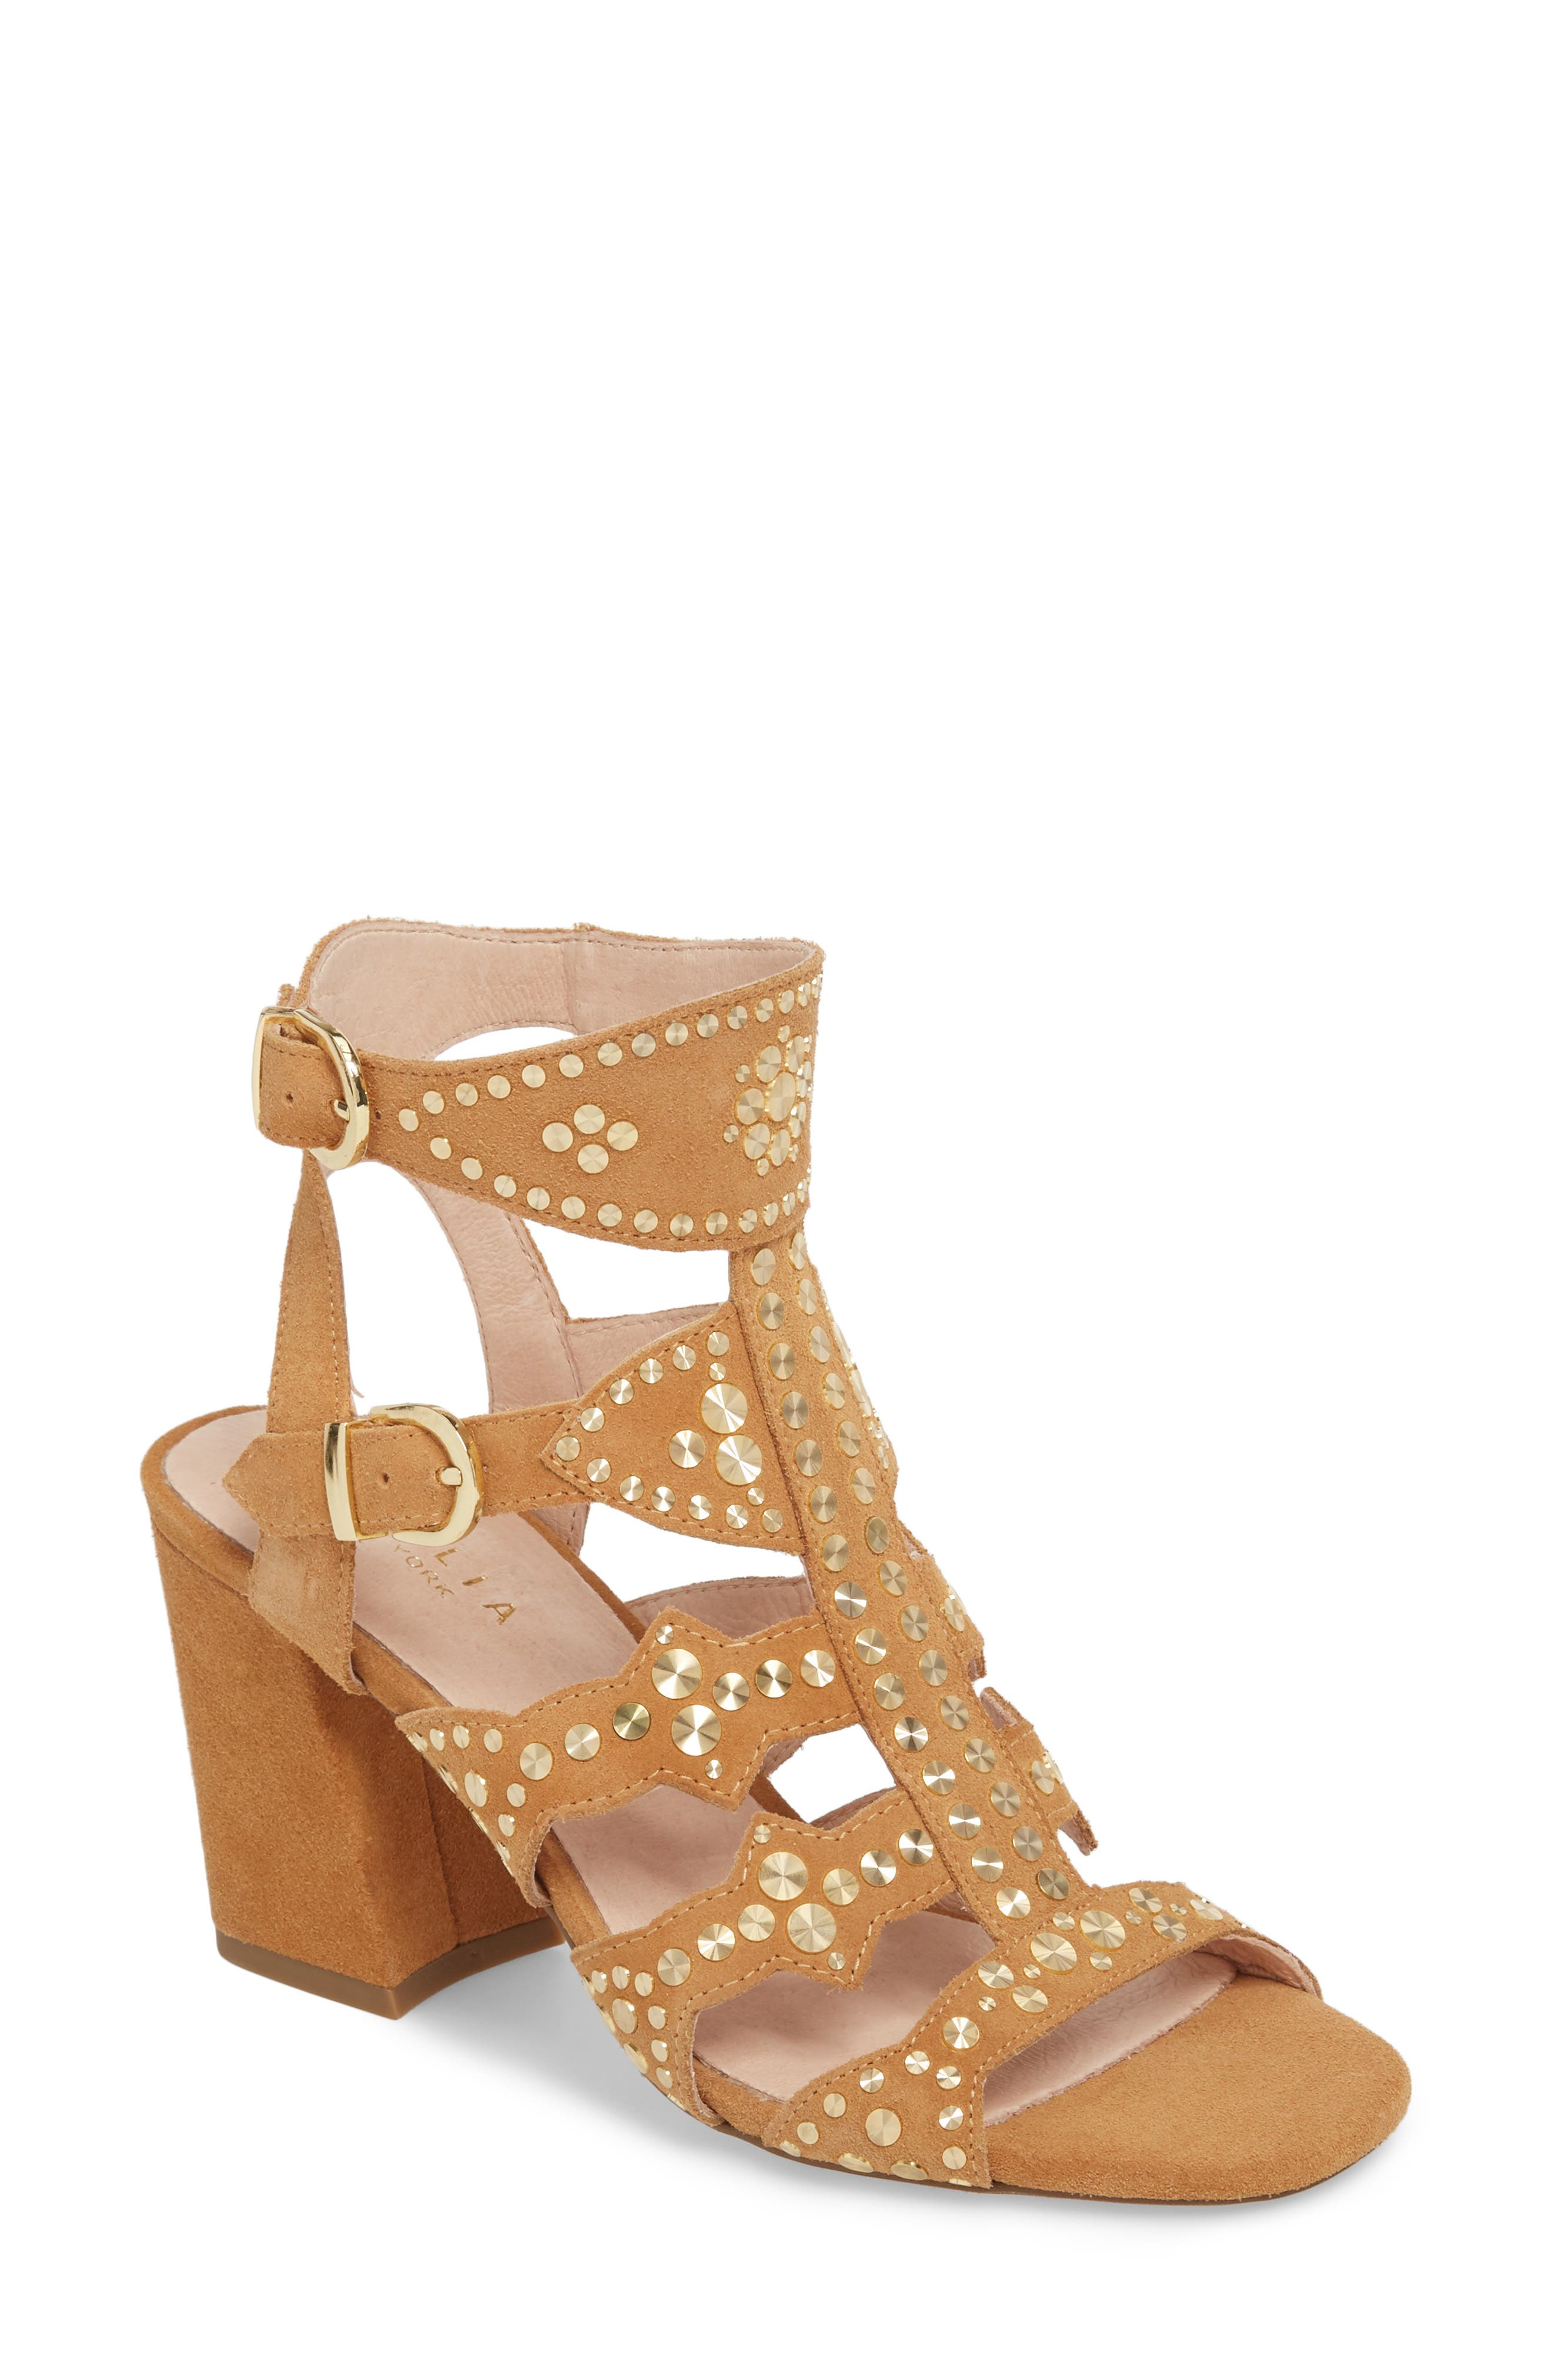 Cosmo Studded Sandal,                         Main,                         color, Sand Suede